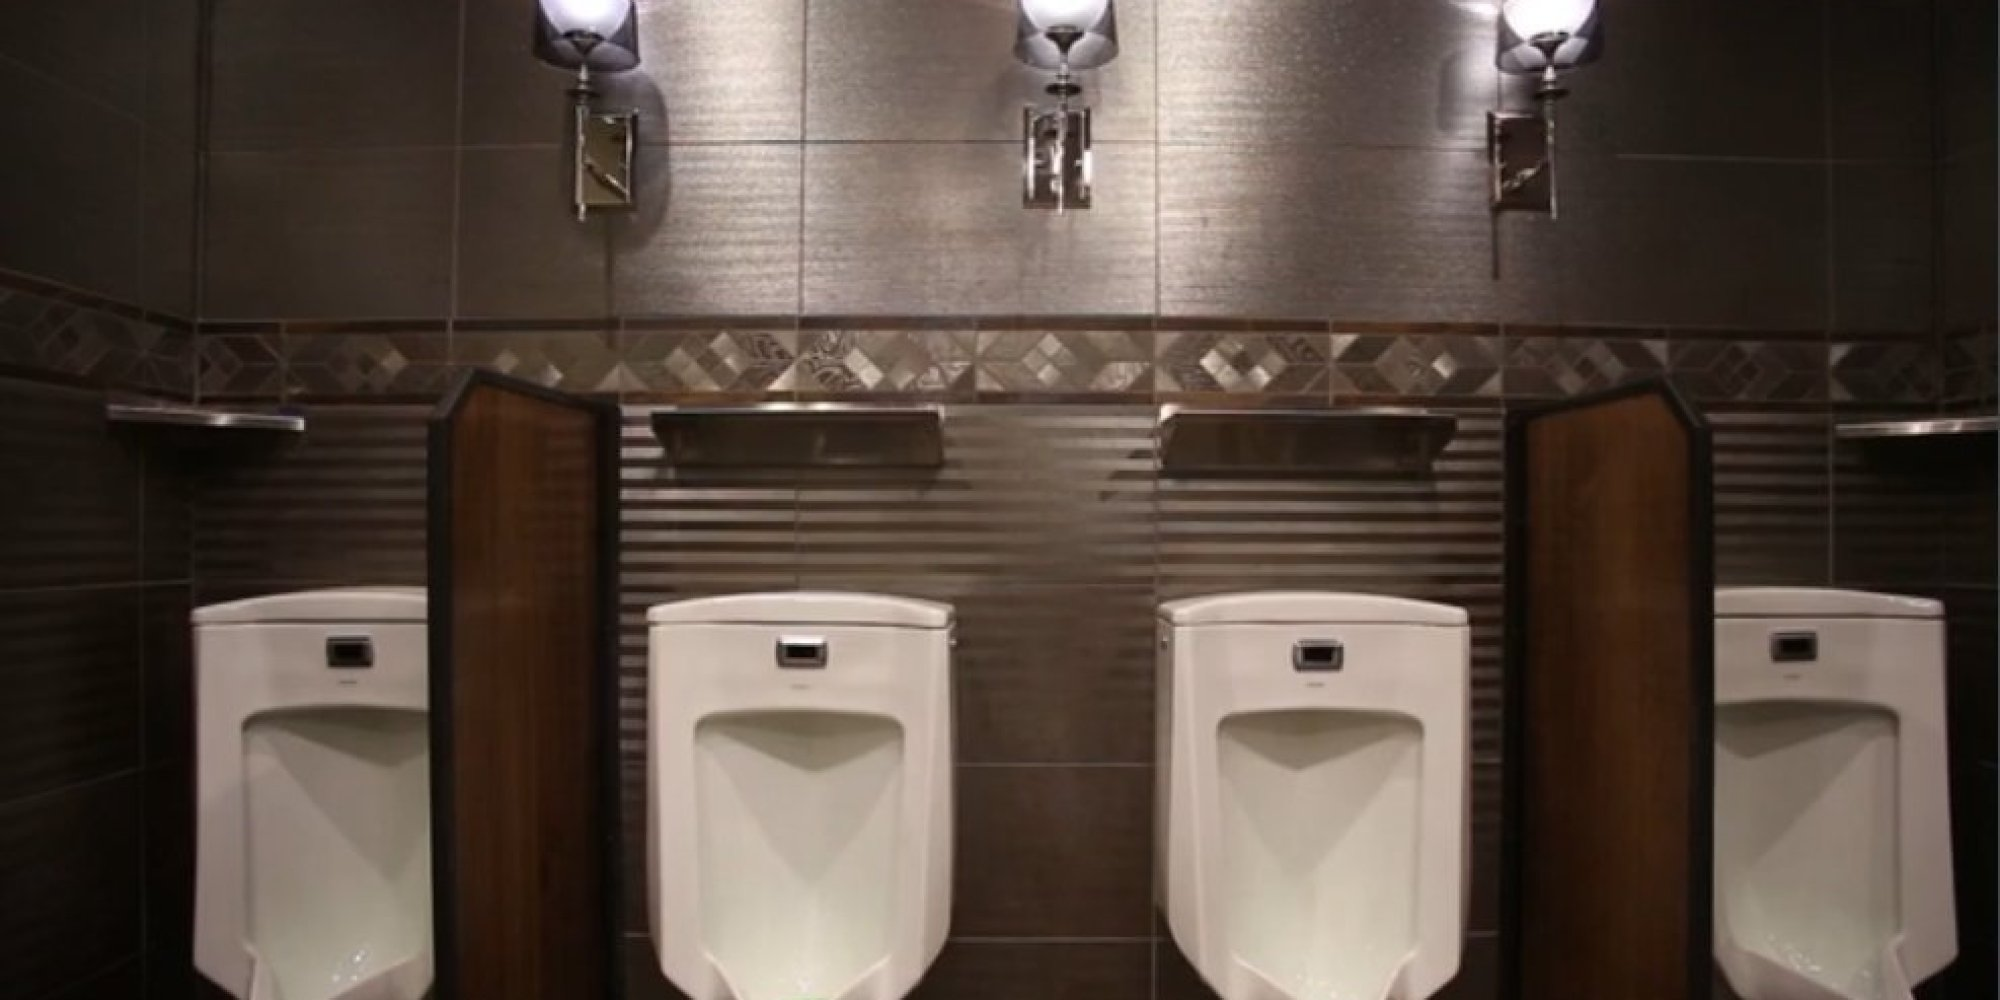 Whitecourt (AB) Canada  city pictures gallery : Canada's Best Restroom 2016 Goes To Whitecourt, Alta. Gas Station